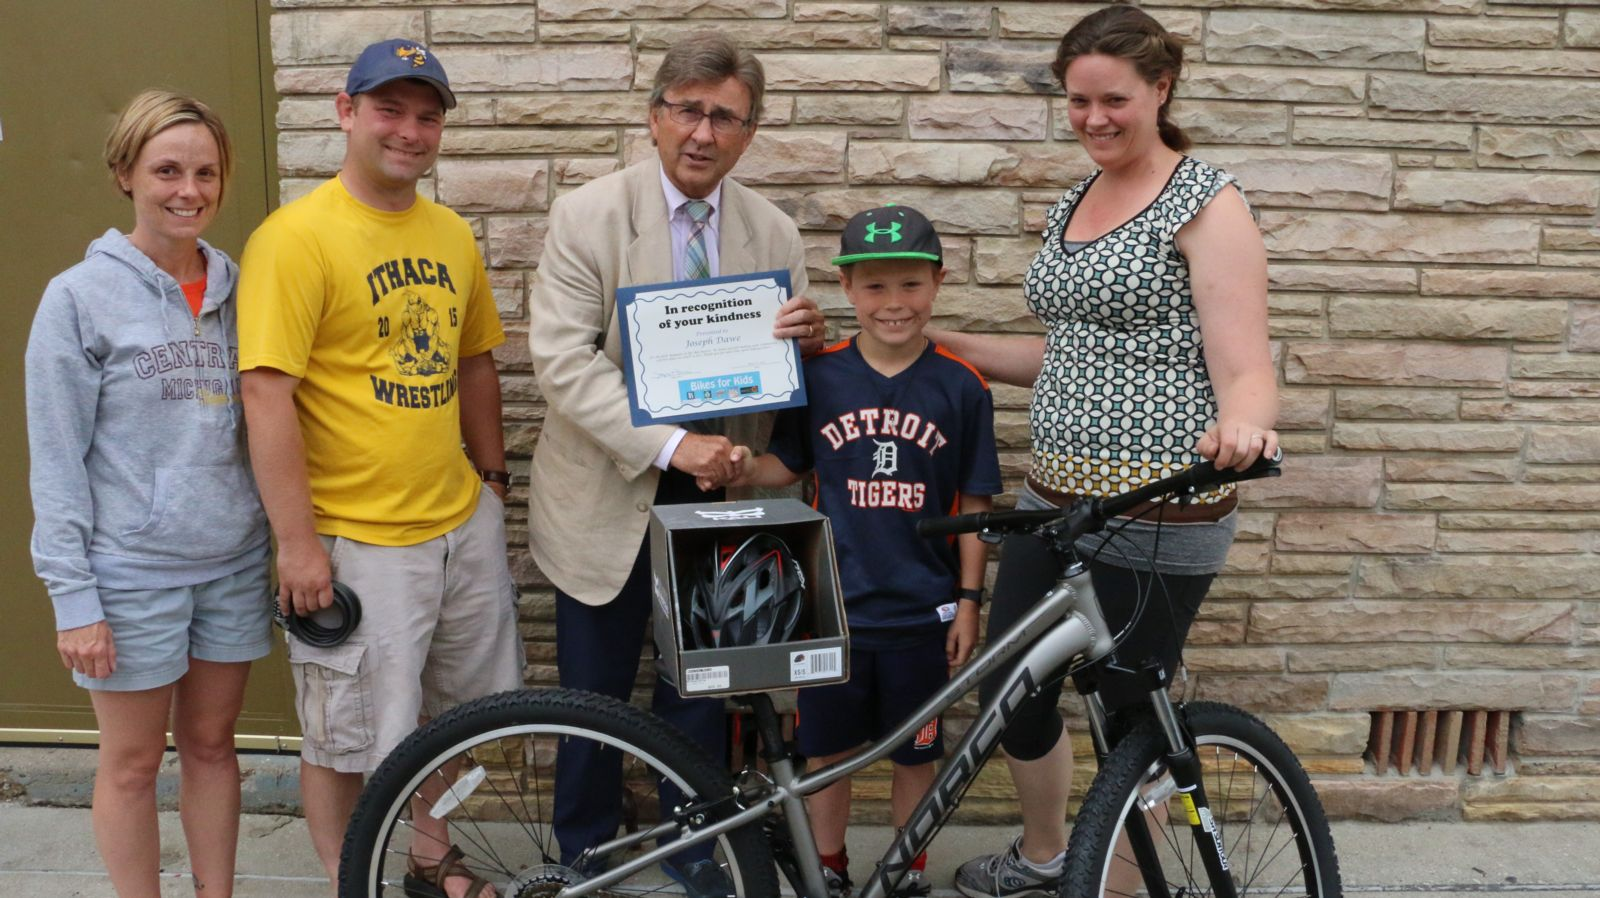 Joe Barberi with Joe Dawe and family, and Allison Quast-Lents - Bikes for Kids winner 2016